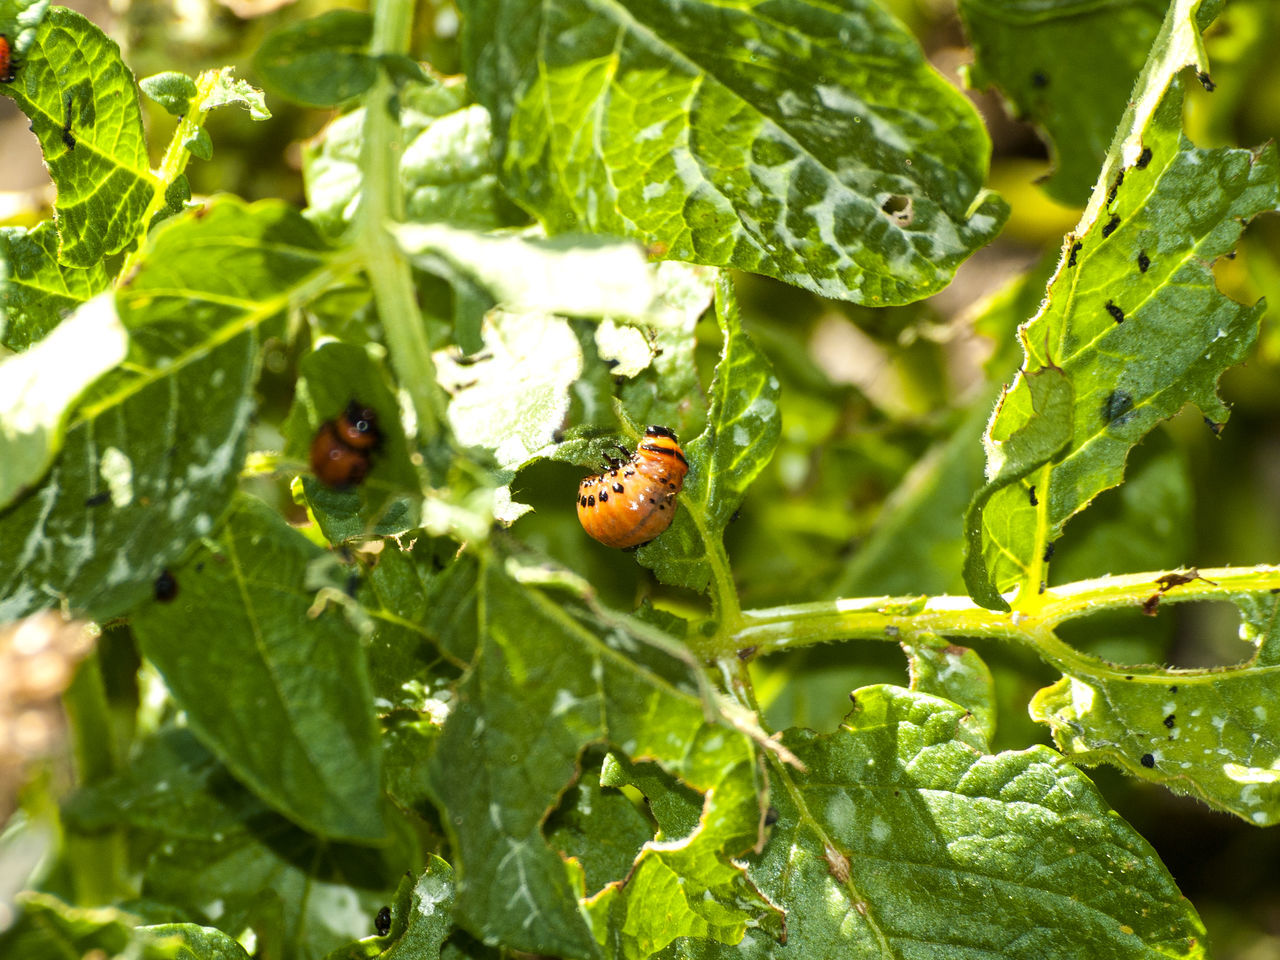 leaf, insect, green color, animal themes, animals in the wild, one animal, nature, day, outdoors, plant, close-up, no people, ladybug, beauty in nature